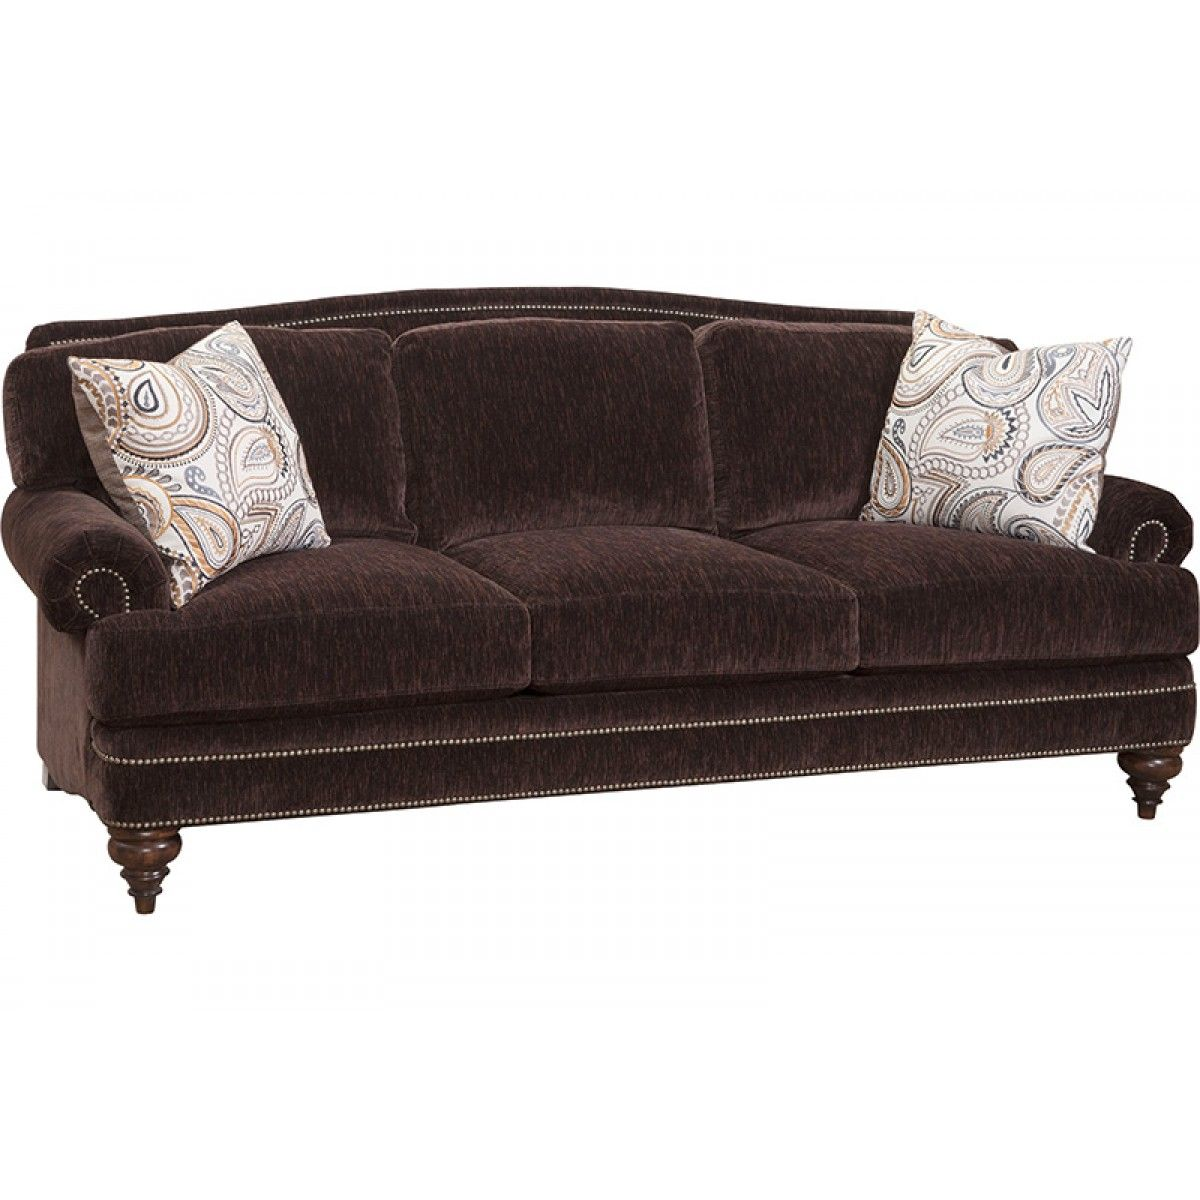 Thomasville Westport Sofa Sofas Home Decor Furniture